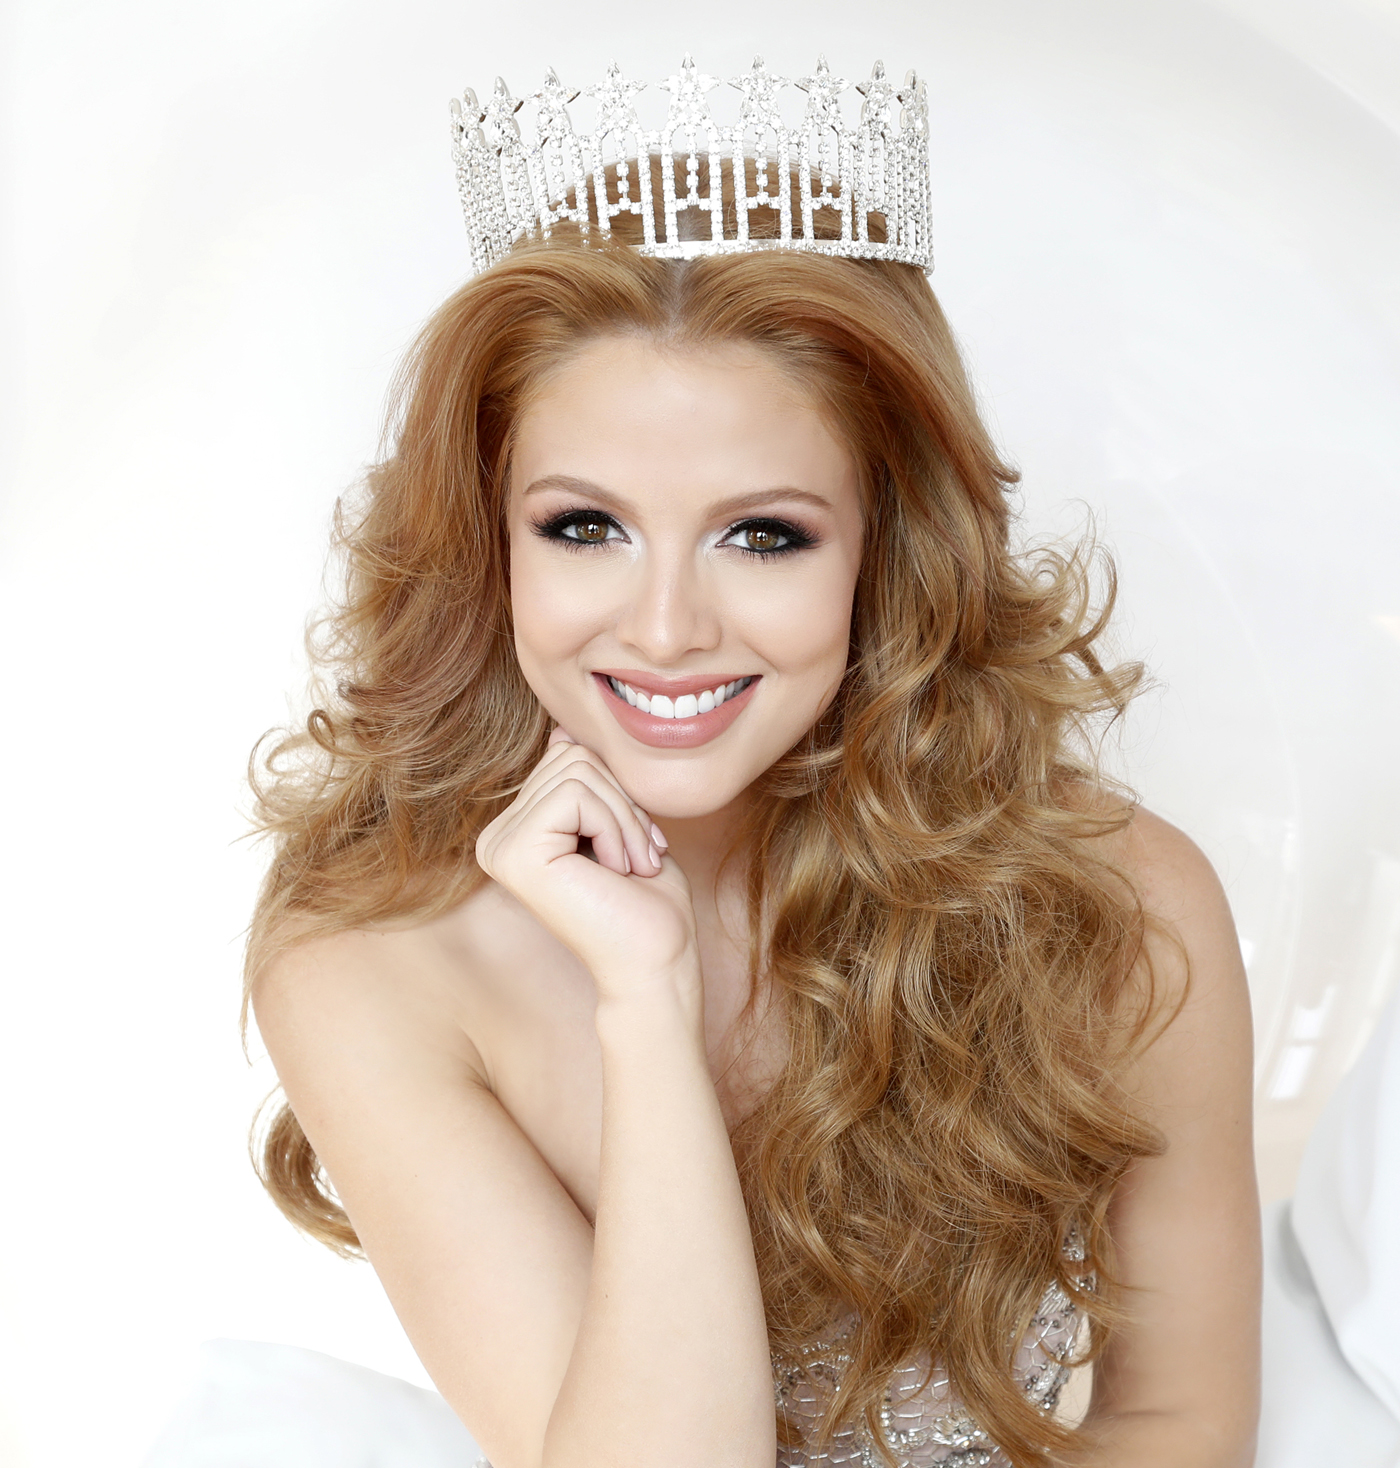 Hannah Lopa of Spencerport was crowned Miss New York USA in January 2017. Provided photo